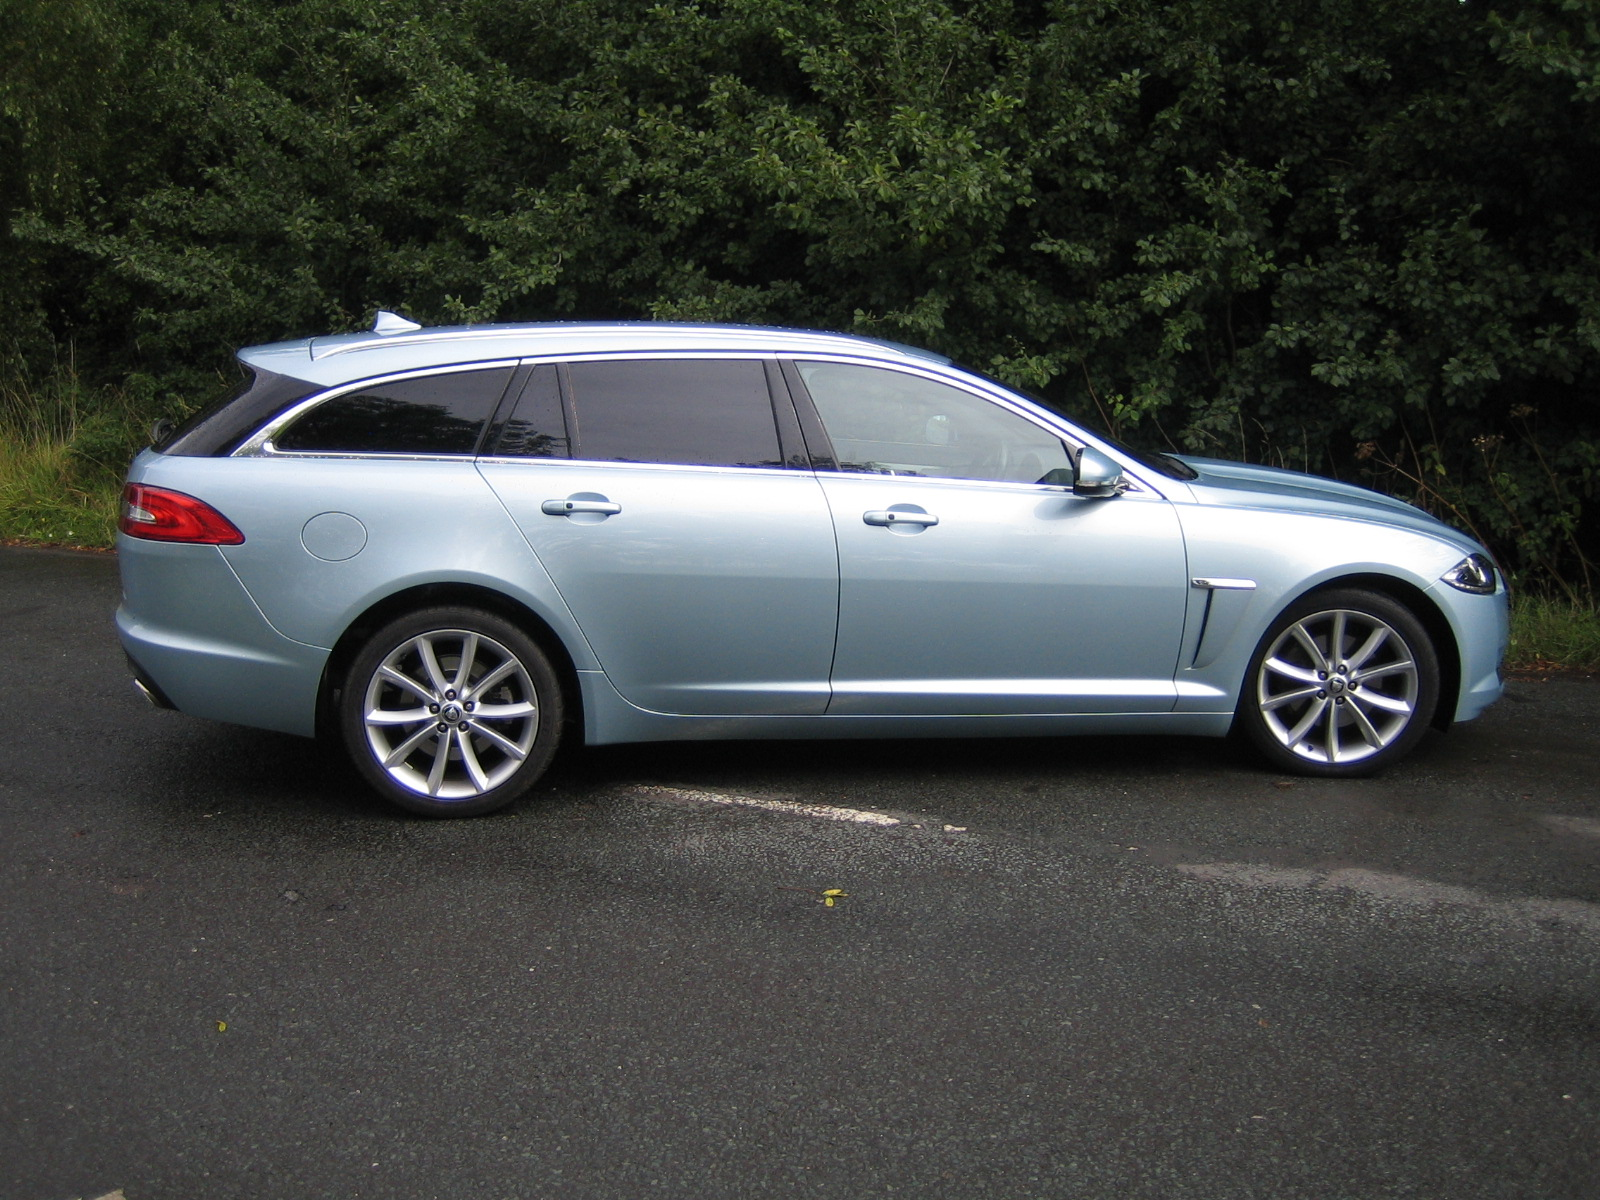 jaguar xf sportbrake 2 2 diesel comes with luggage space. Black Bedroom Furniture Sets. Home Design Ideas